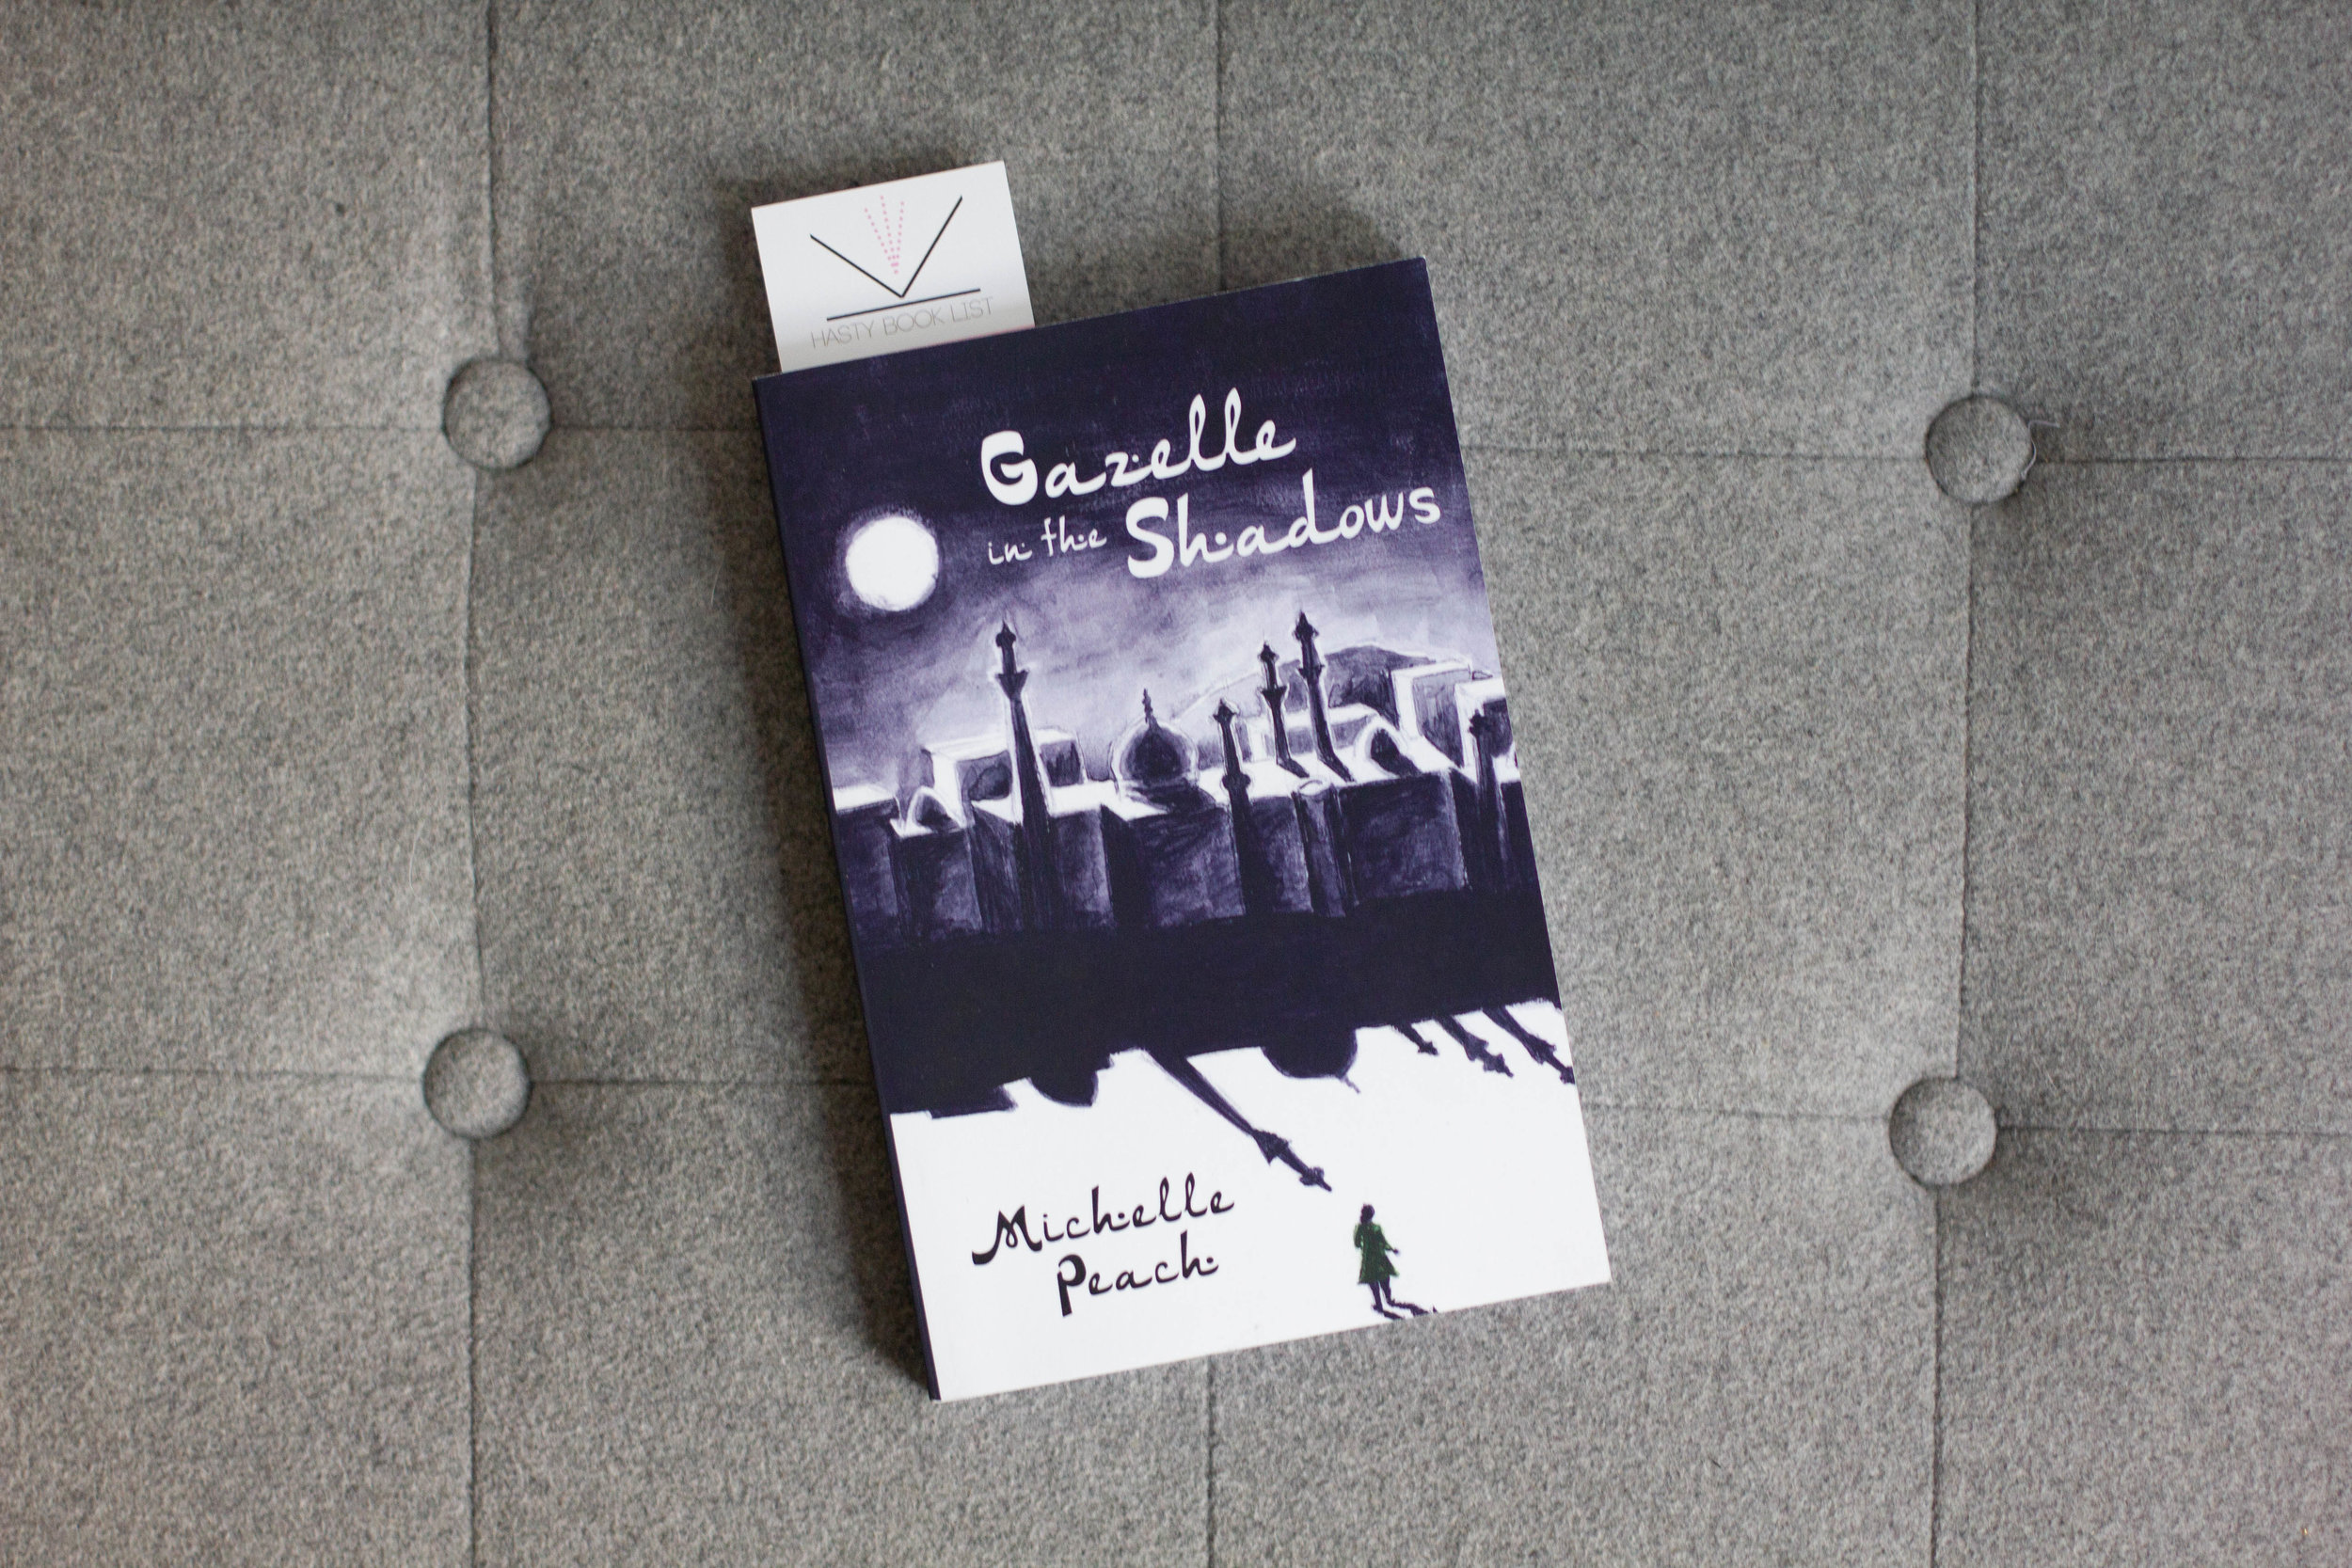 Book Feature - Gazelle in the Shadows by Michelle Peach